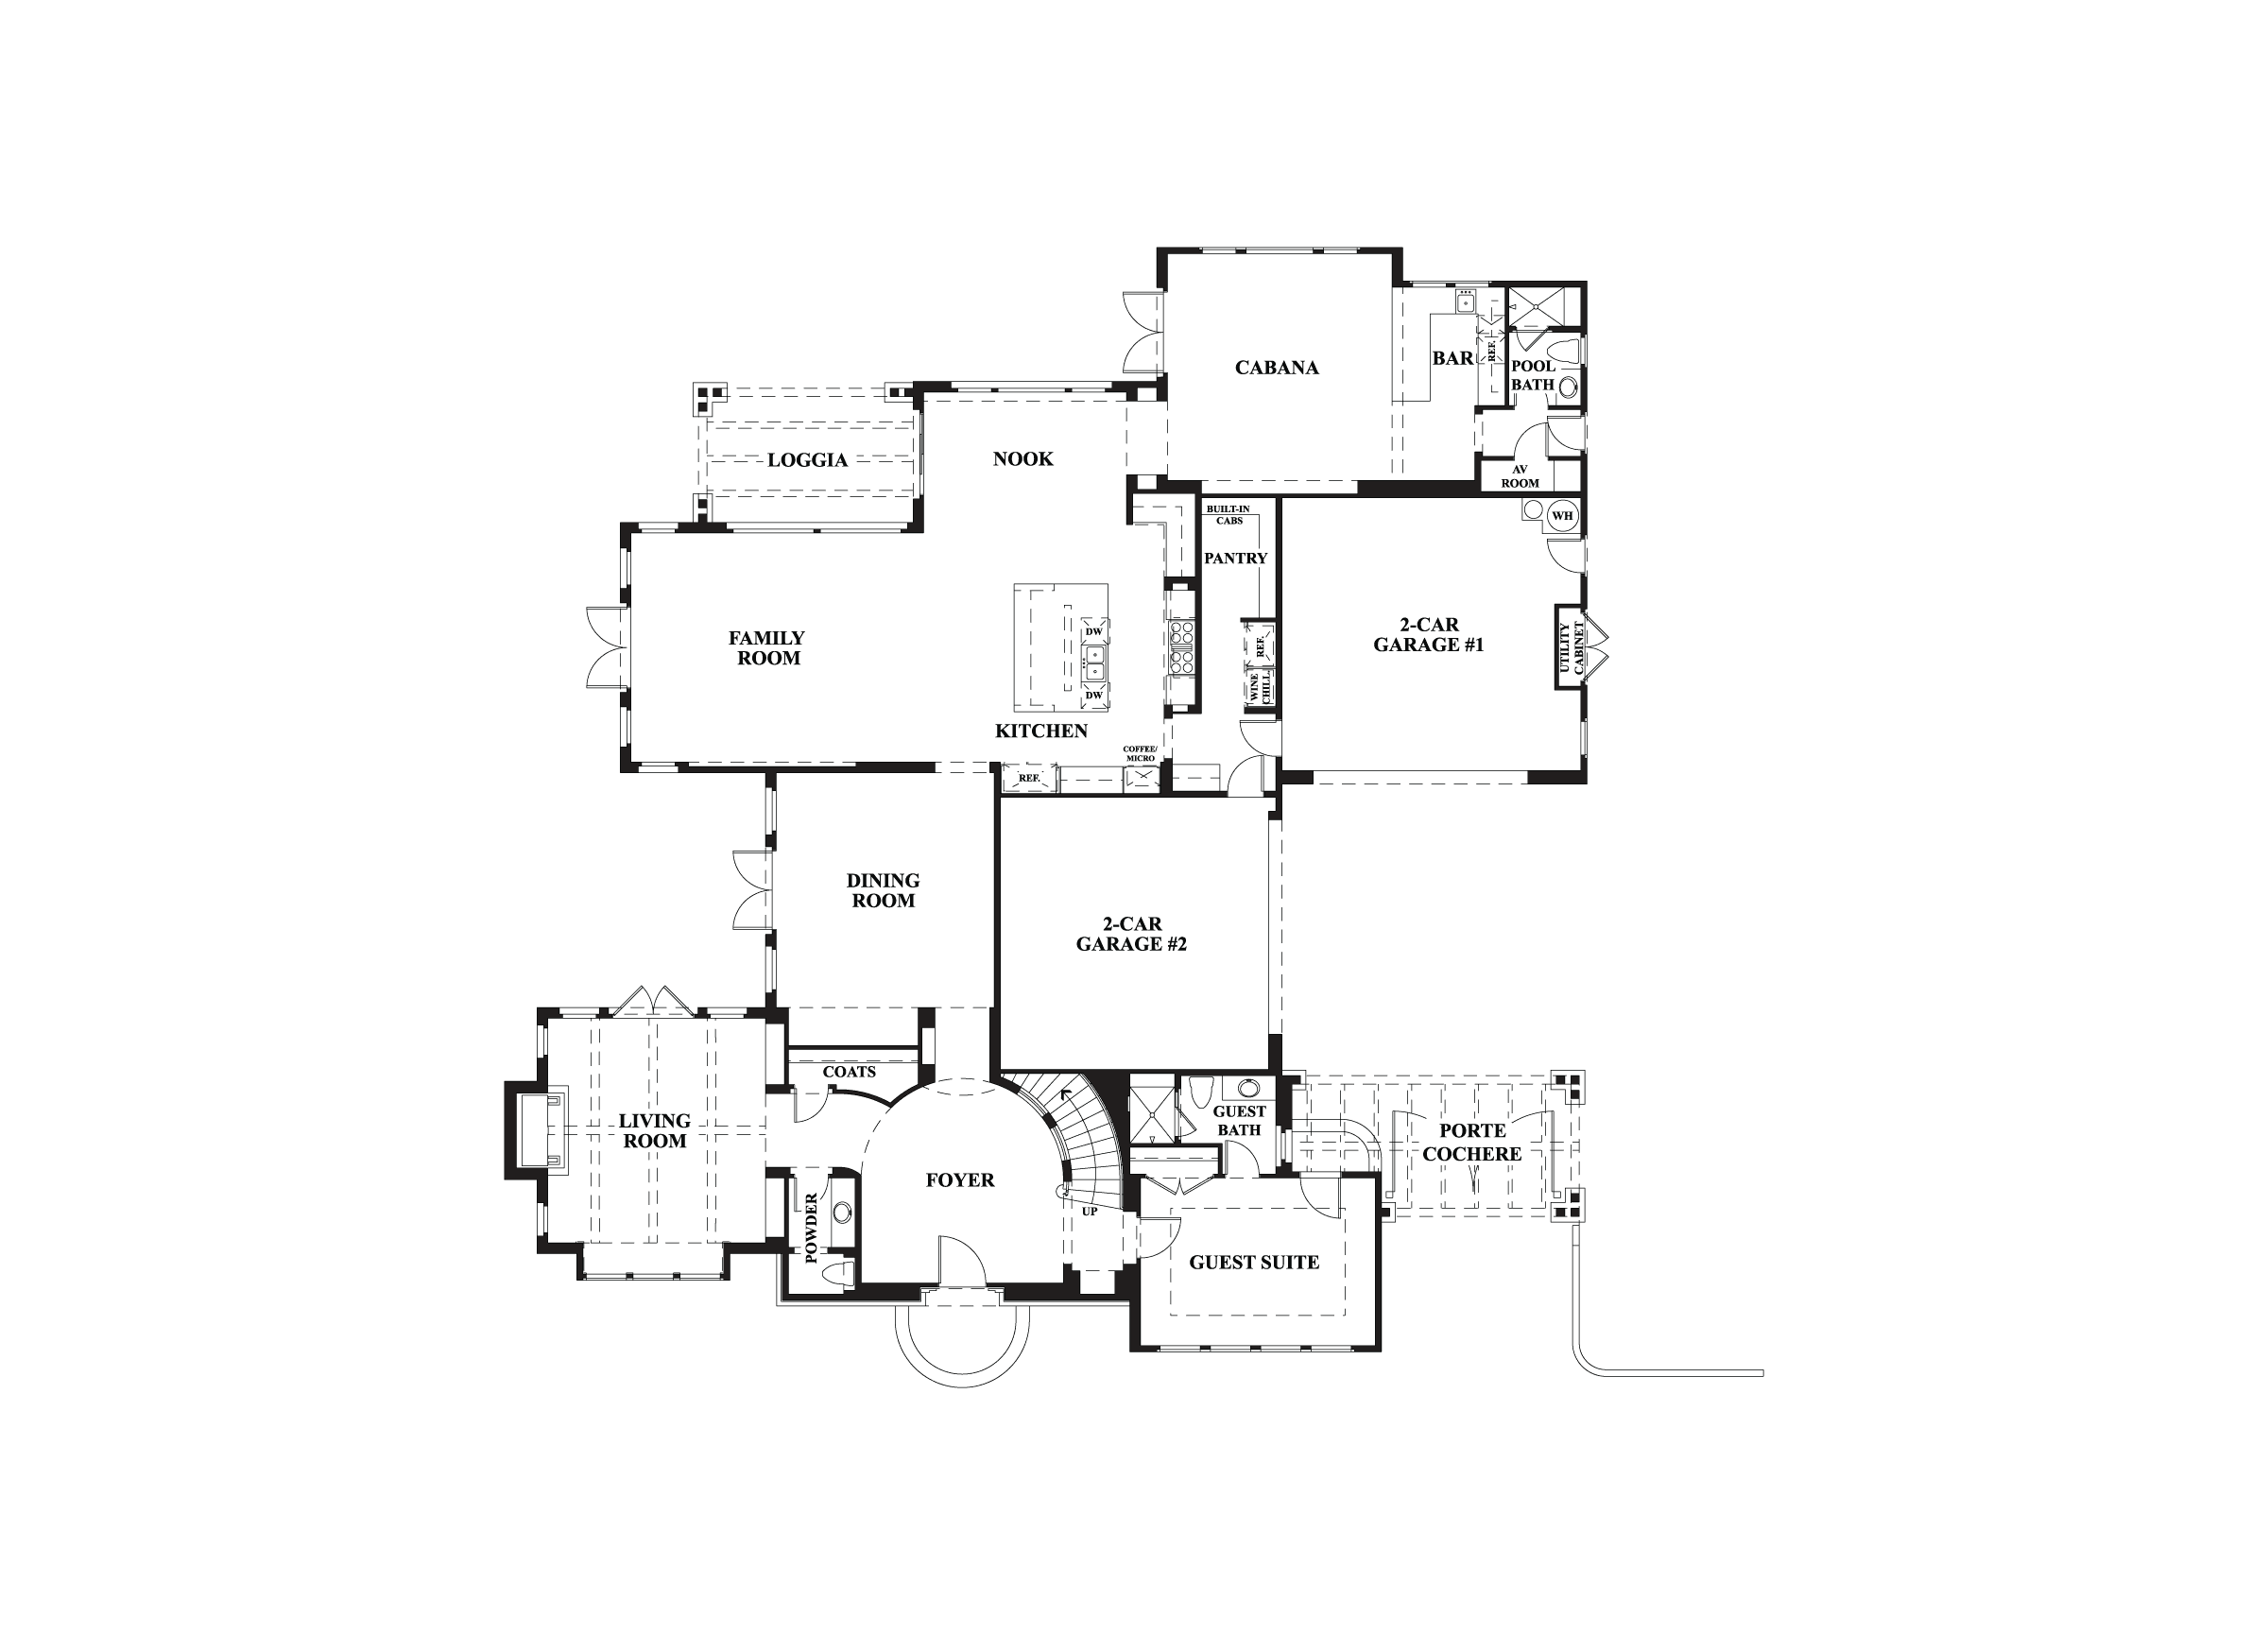 new construction floor plans in ladera ranch ca newhomesource